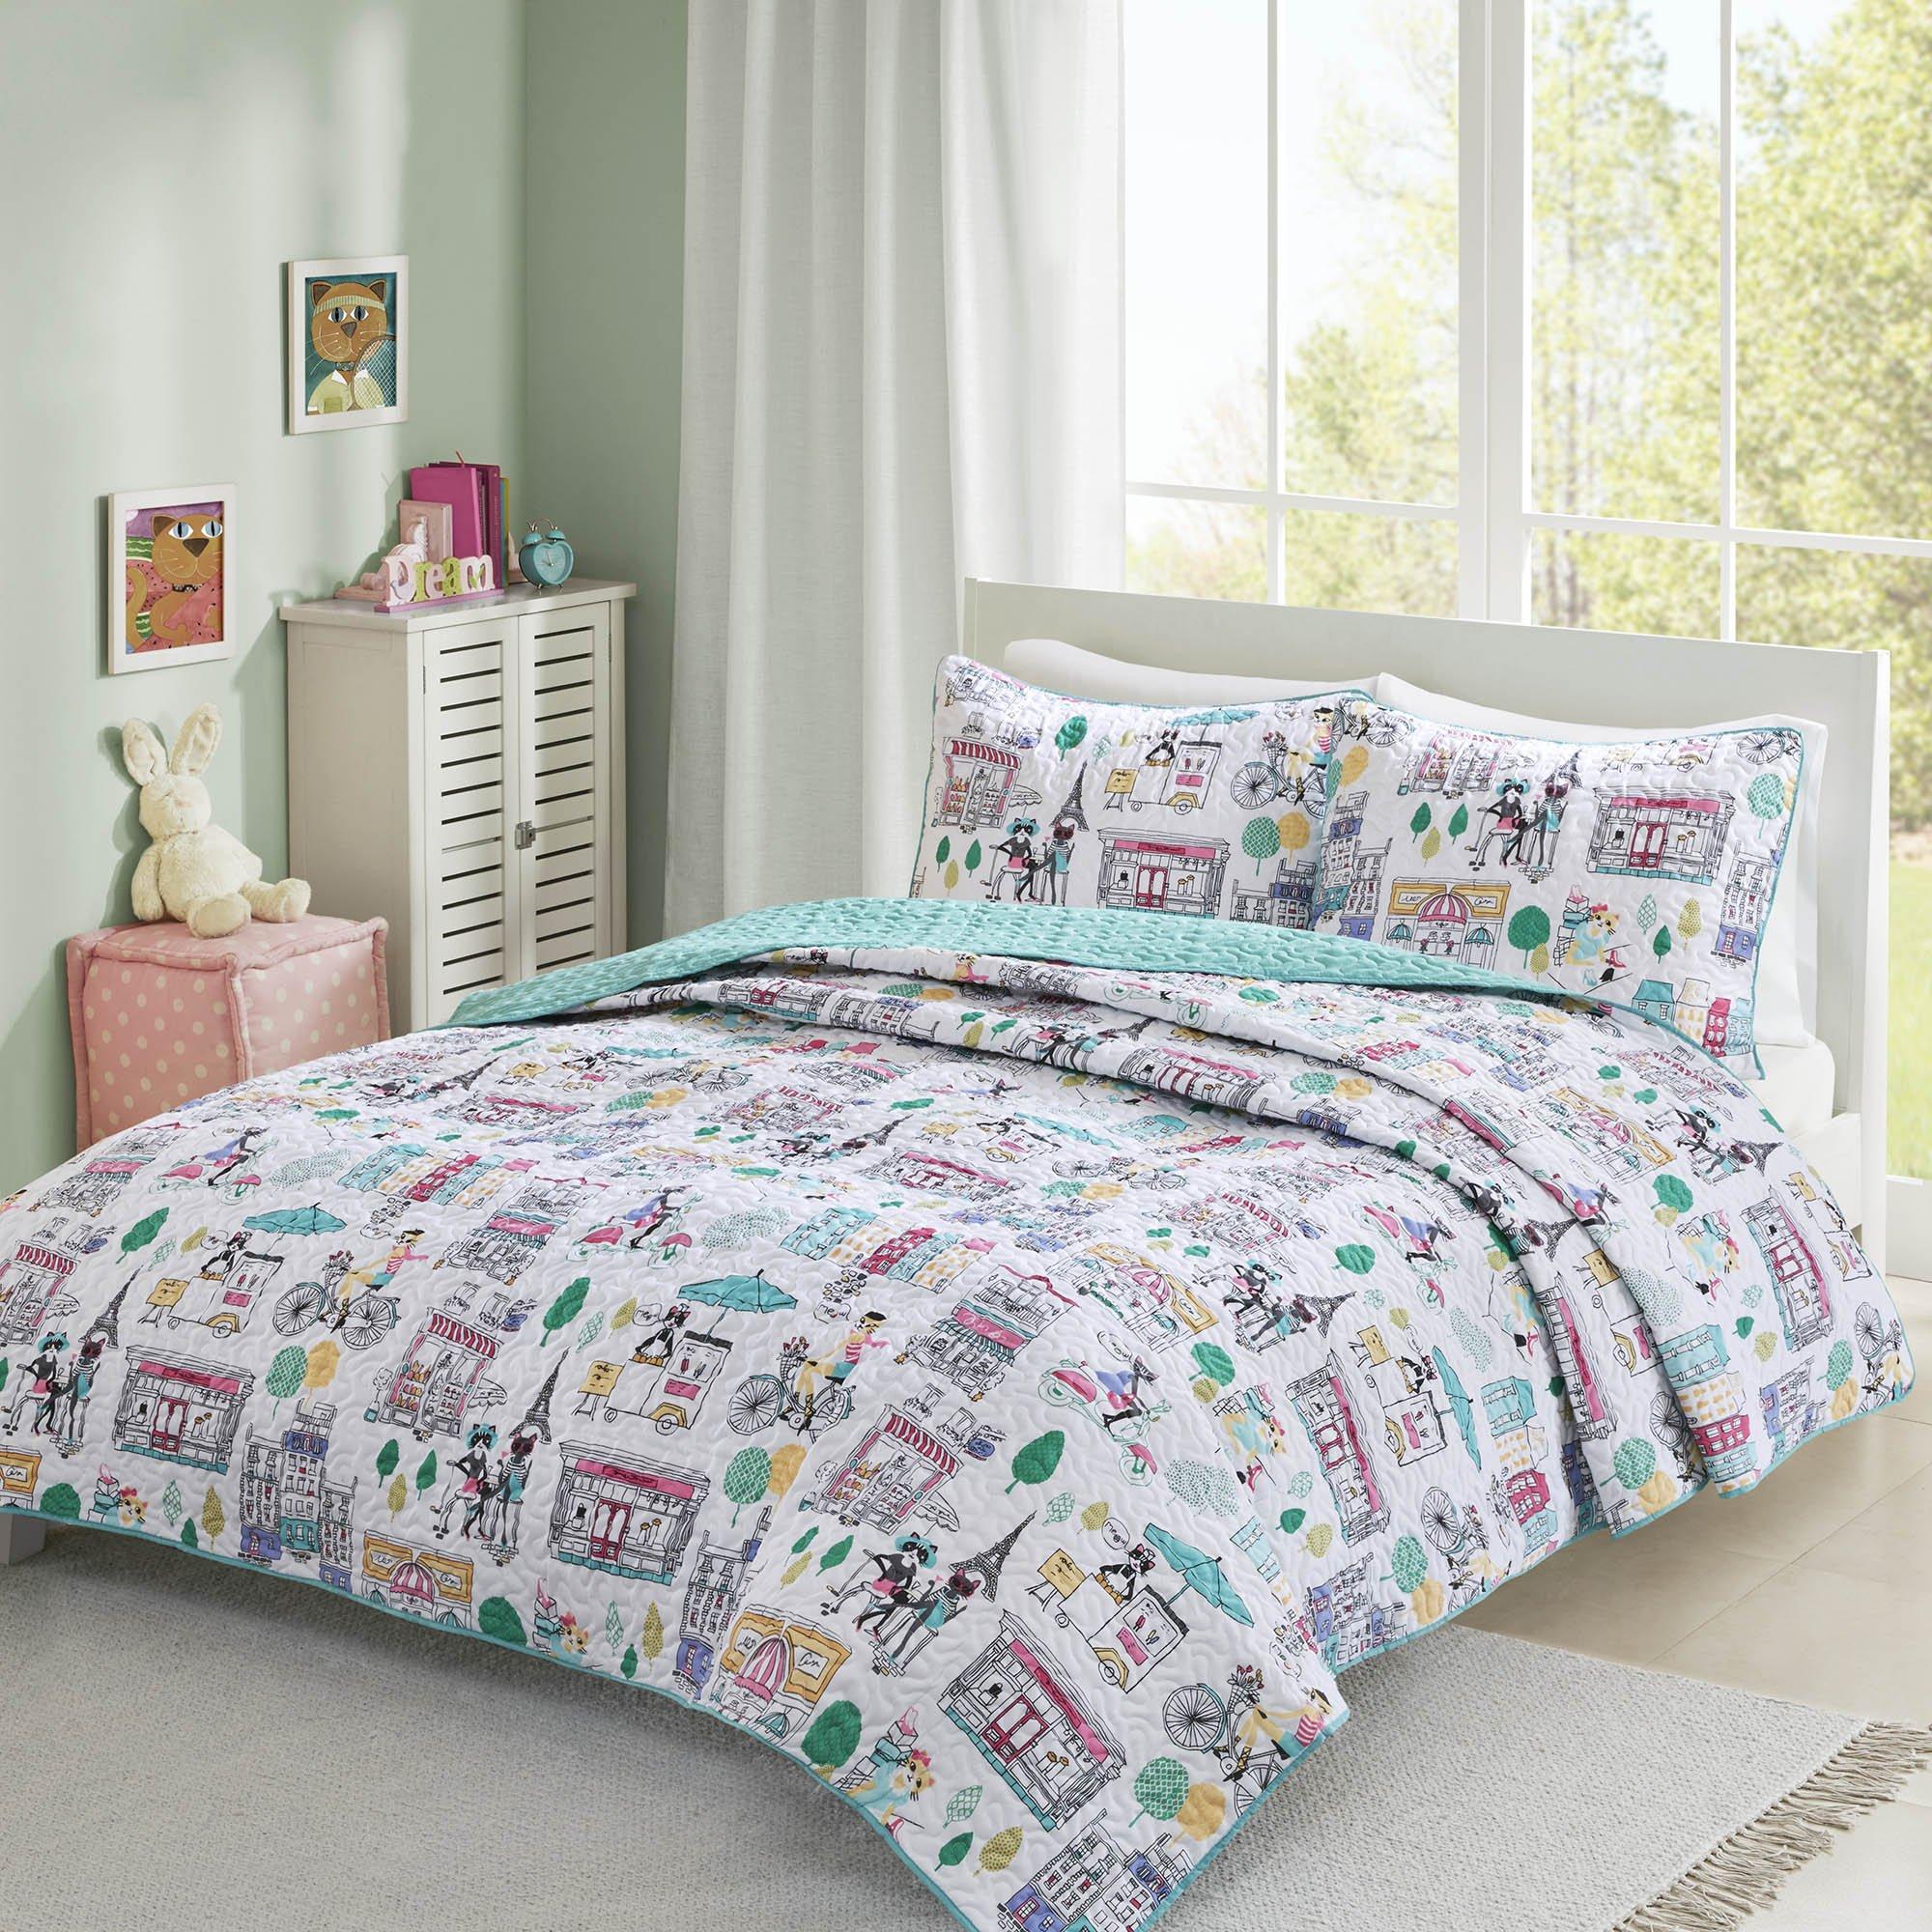 Comfort Spaces Girls/Boys Bedding Full/Queen Size - Paco, Cats, Eiffel Tower 3 Piece Cute Toddler/Kids Mini Quilt Set - Aqua - Hypoallergenic Microfiber - All Season